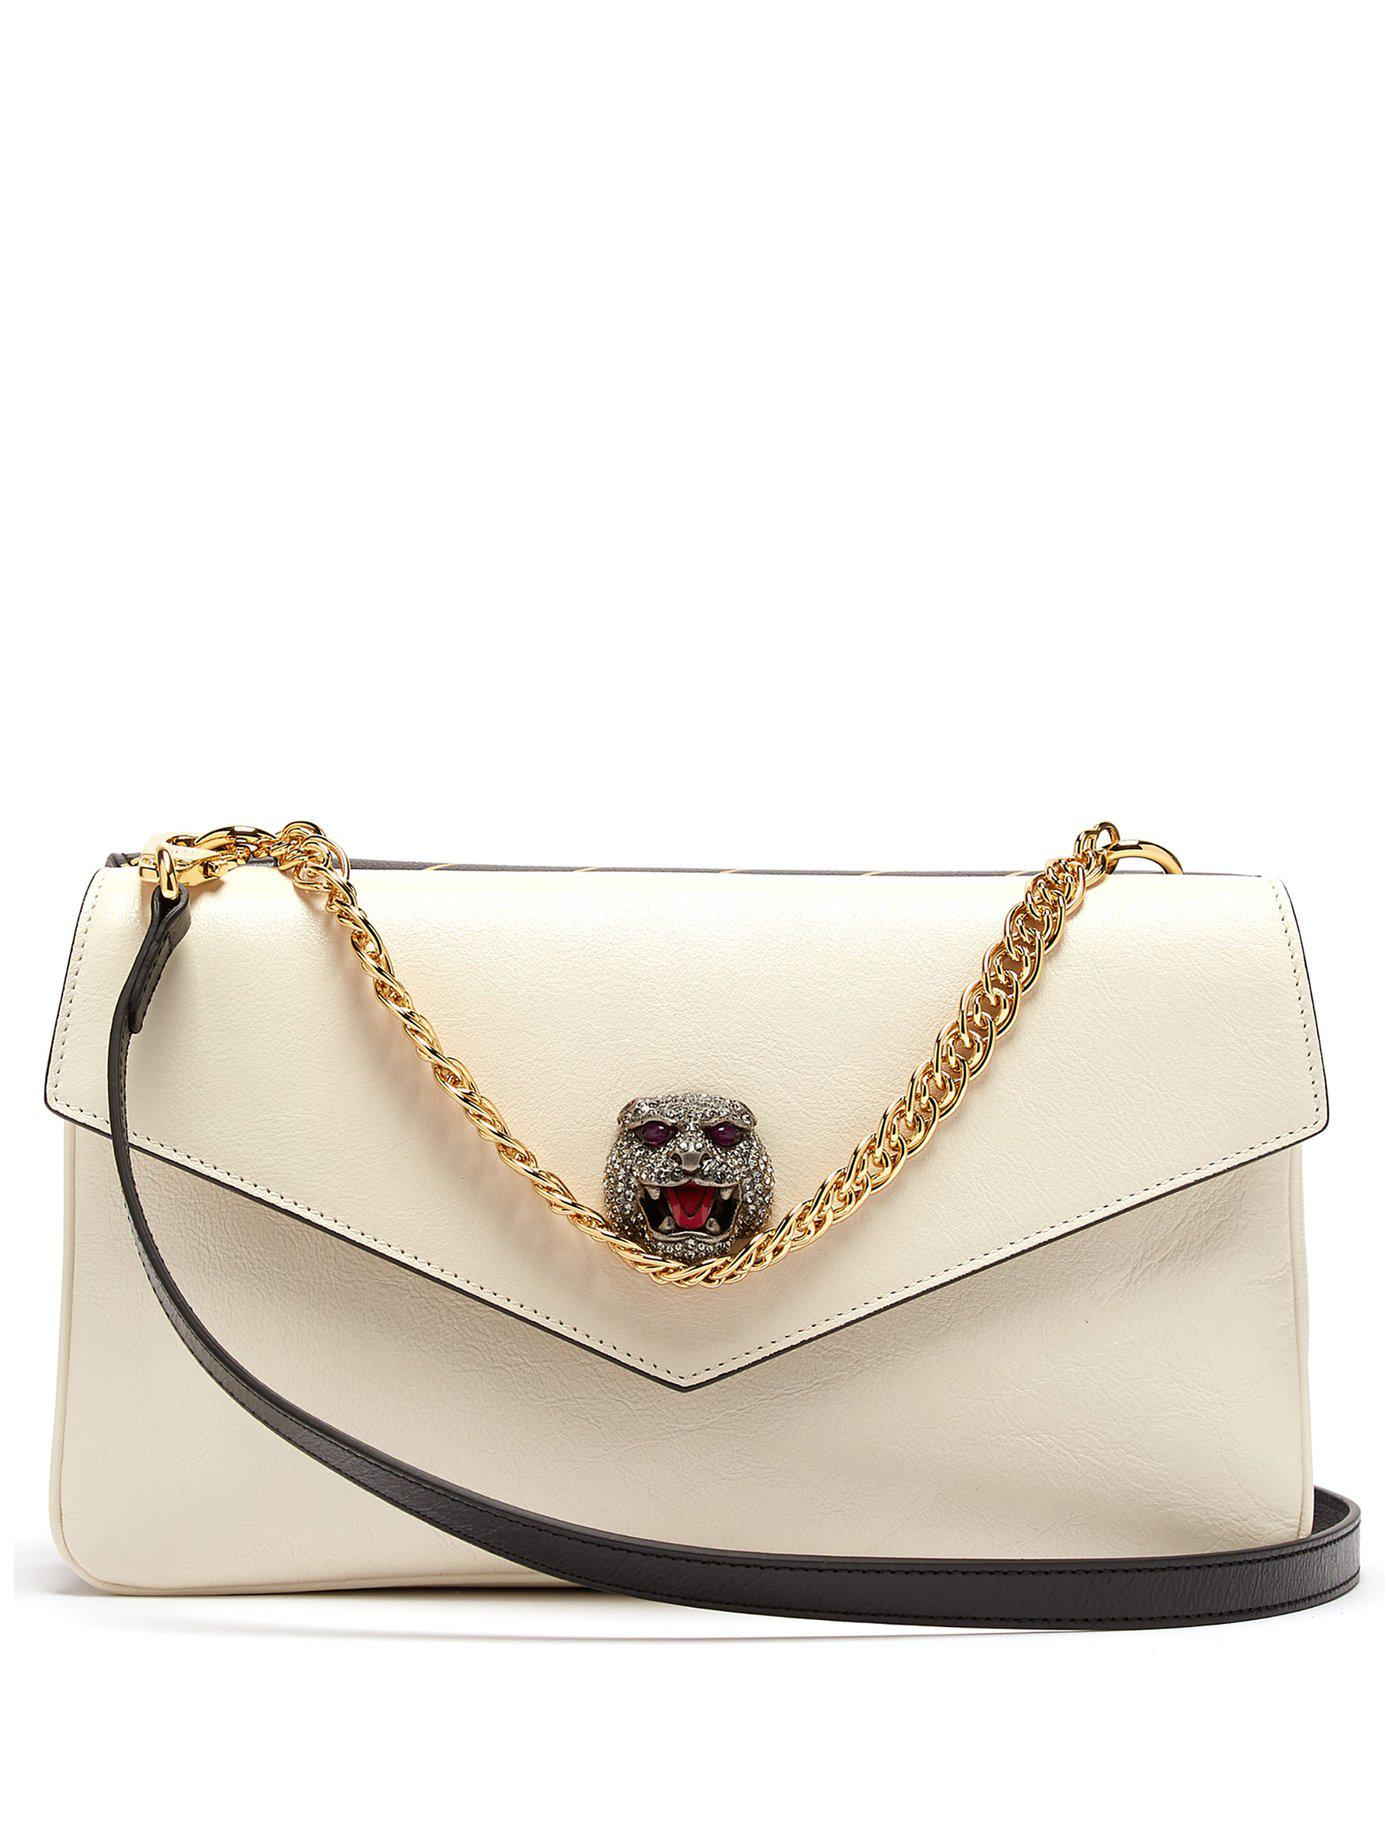 6bdfc84ff Gucci Thiara Gg Panther Head Cross Body Bag in Natural - Lyst